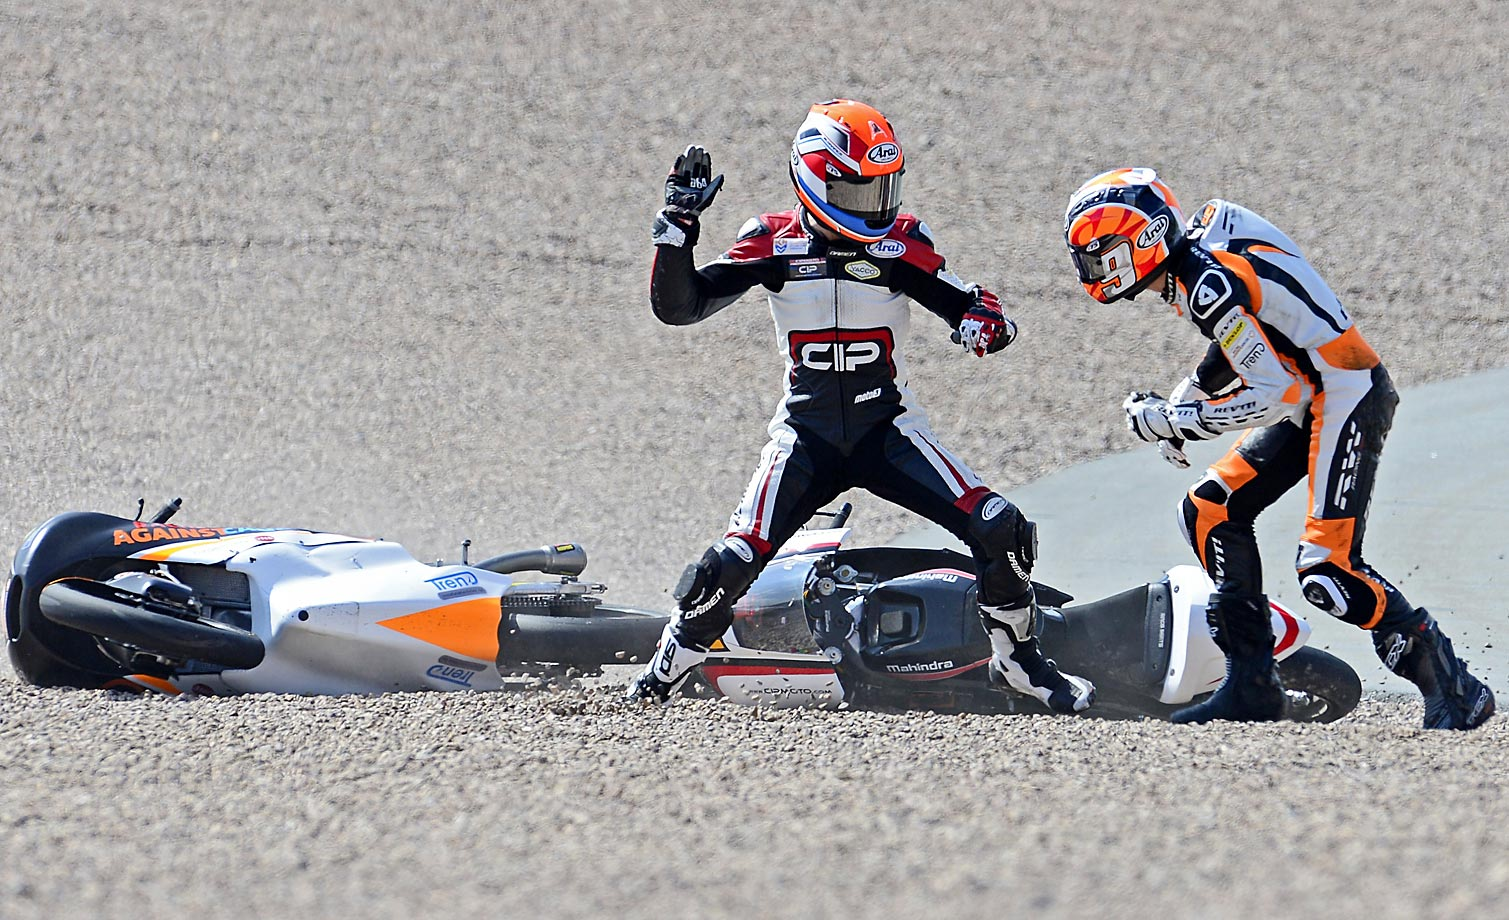 Mahindra rider Bryan Schouten of Netherlands (left) and his compatriot, Kalex KTM rider Scott Derouse, fight after crashing in the Moto3 race of the Grand Prix of Germany at the Sachsenring Circuit on July 13, 2014 in Hohenstein-Ernstthal, Germany.